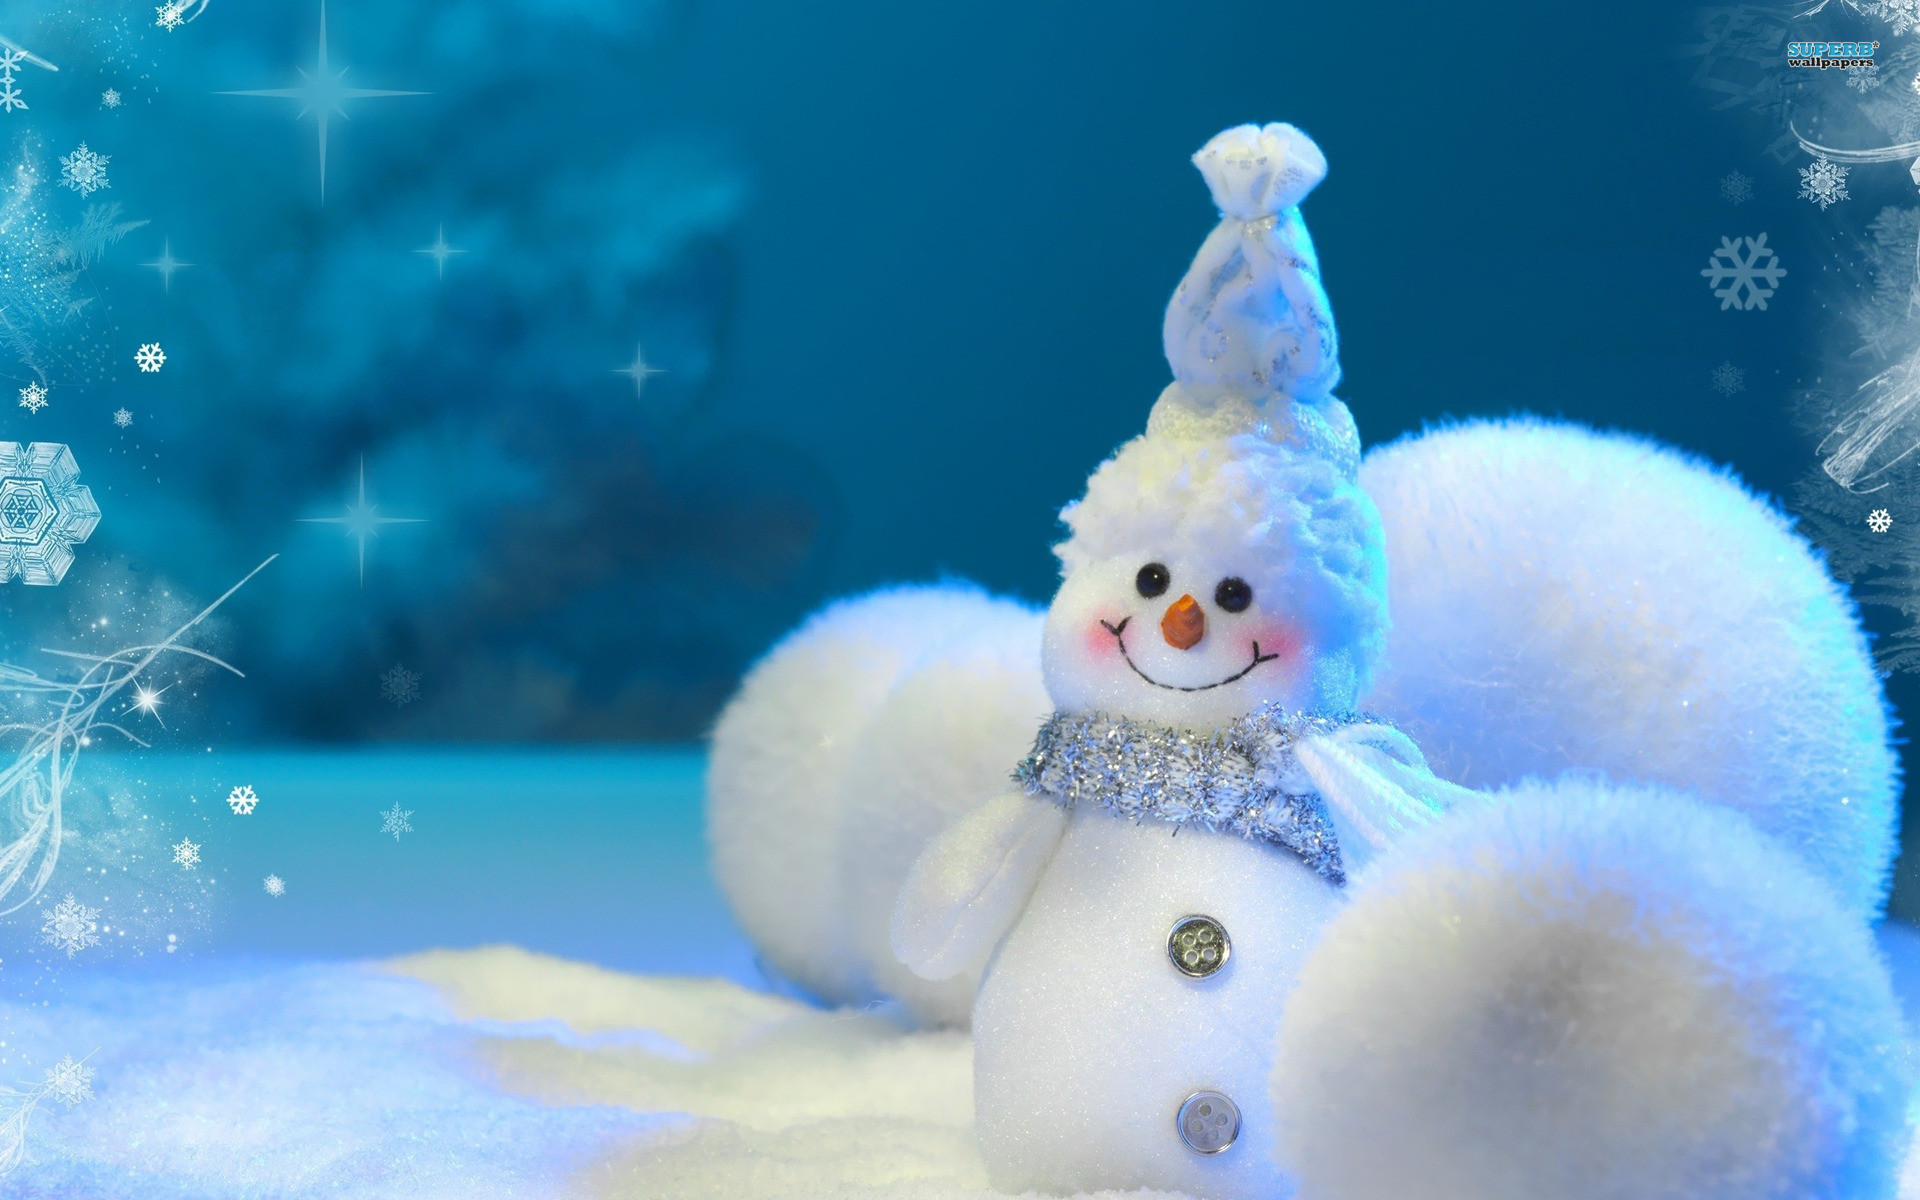 1920x1200 Widescreen Wallpapers of Winter Snowman, New Image